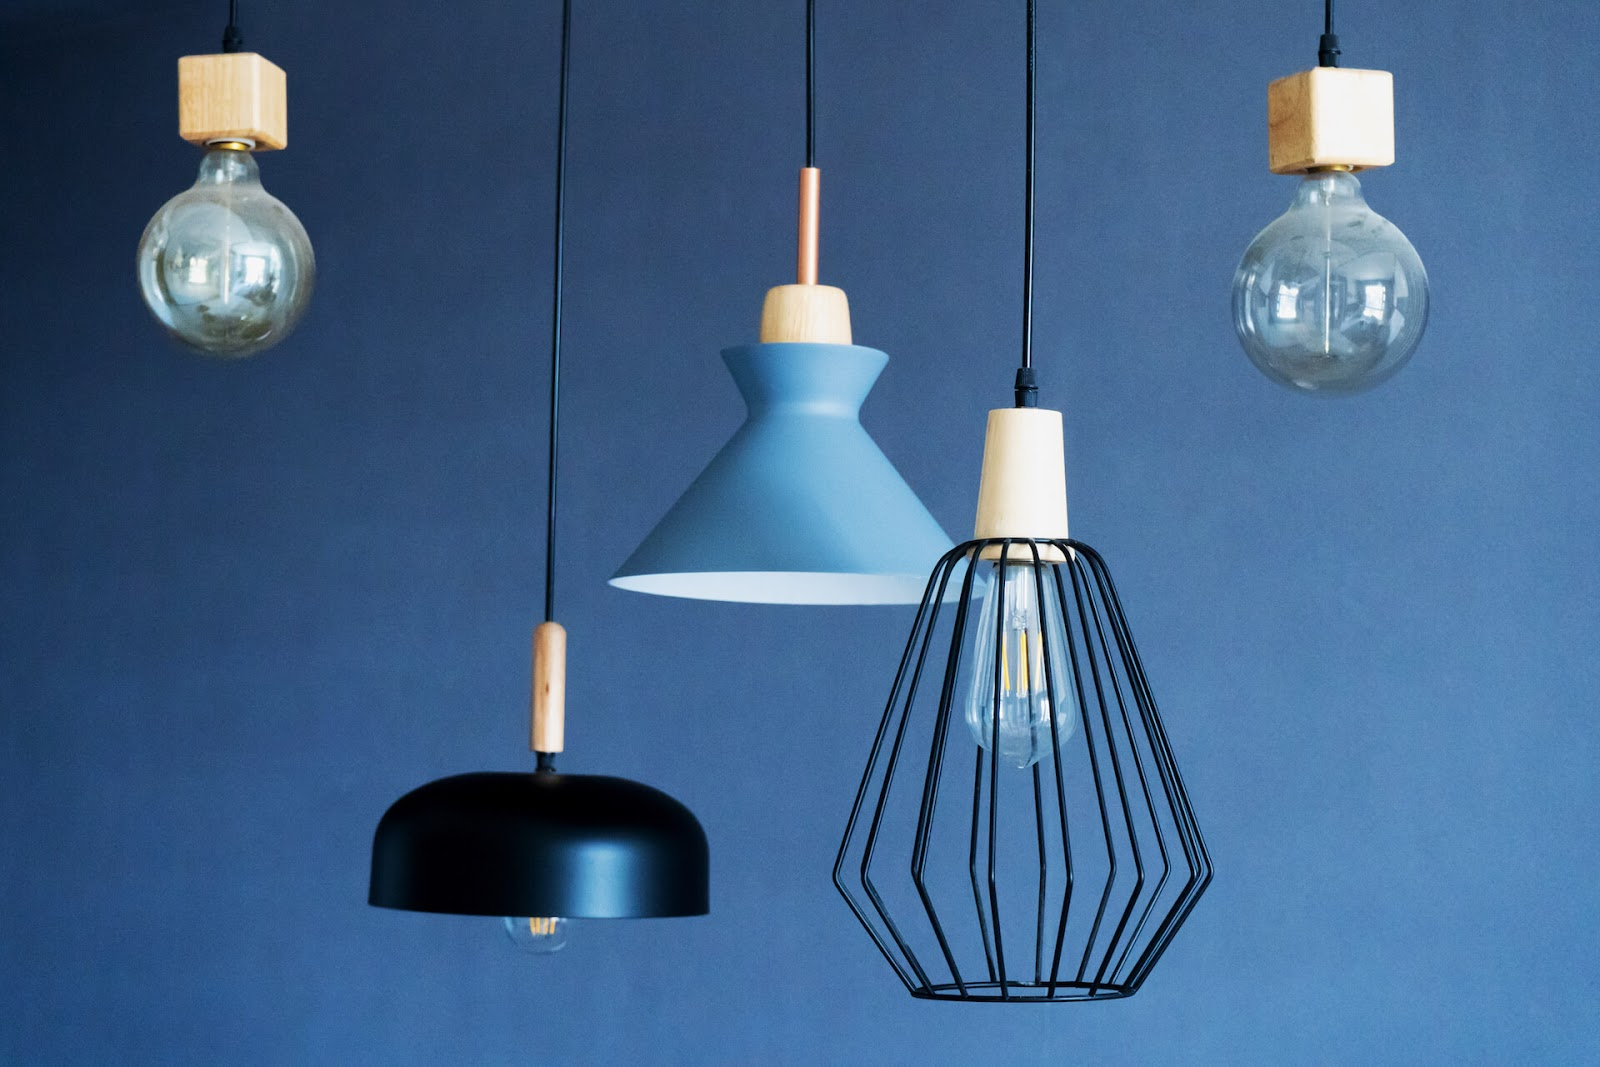 Different hanging ceiling lights against a blue backdrop